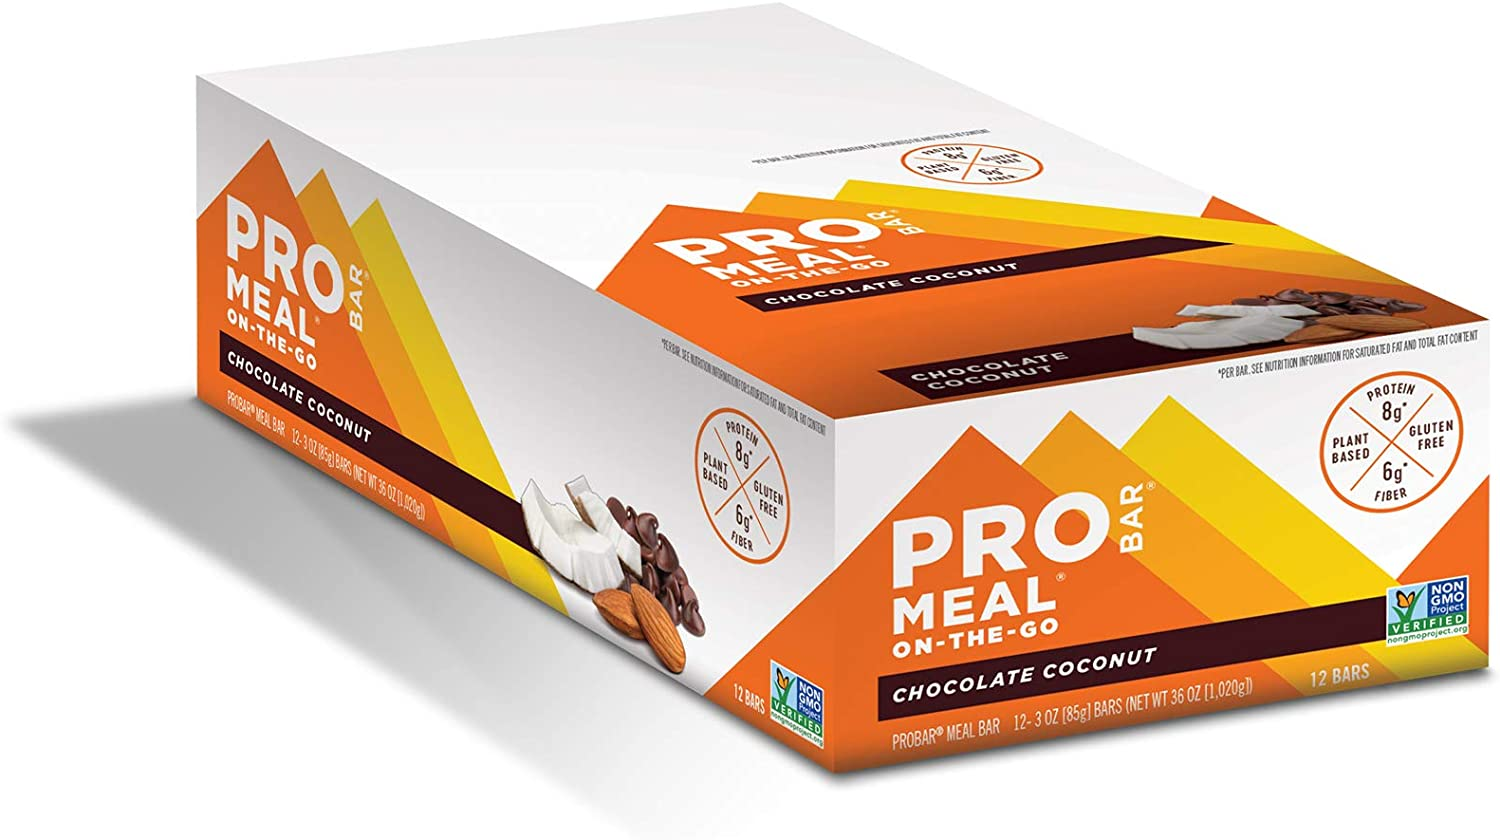 PROBAR - Meal Bar, Chocolate Coconut, Non-GMO, Gluten-Free, Healthy, Plant-Based Whole Food Ingredients, Natural Energy, 3 Ounce (Pack of 12)